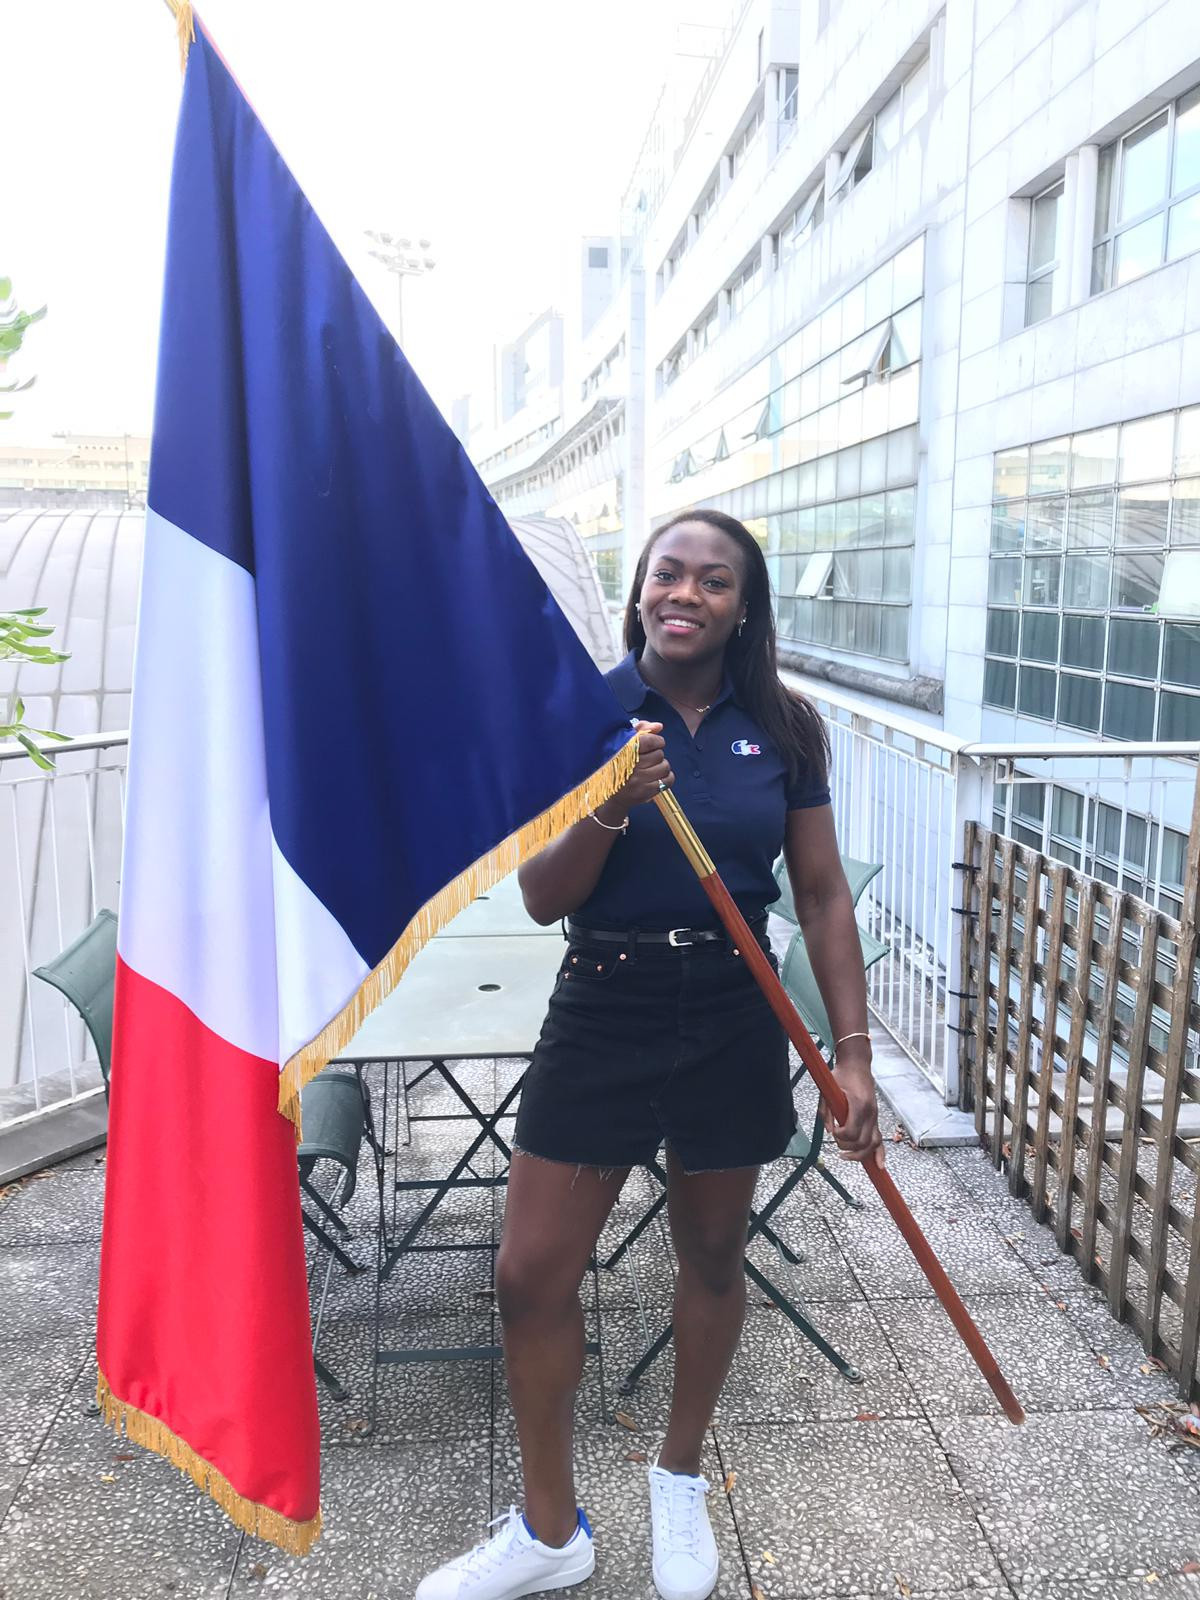 Triple world champion judoka Agbegnenou named French flag bearer at 2019 European Games